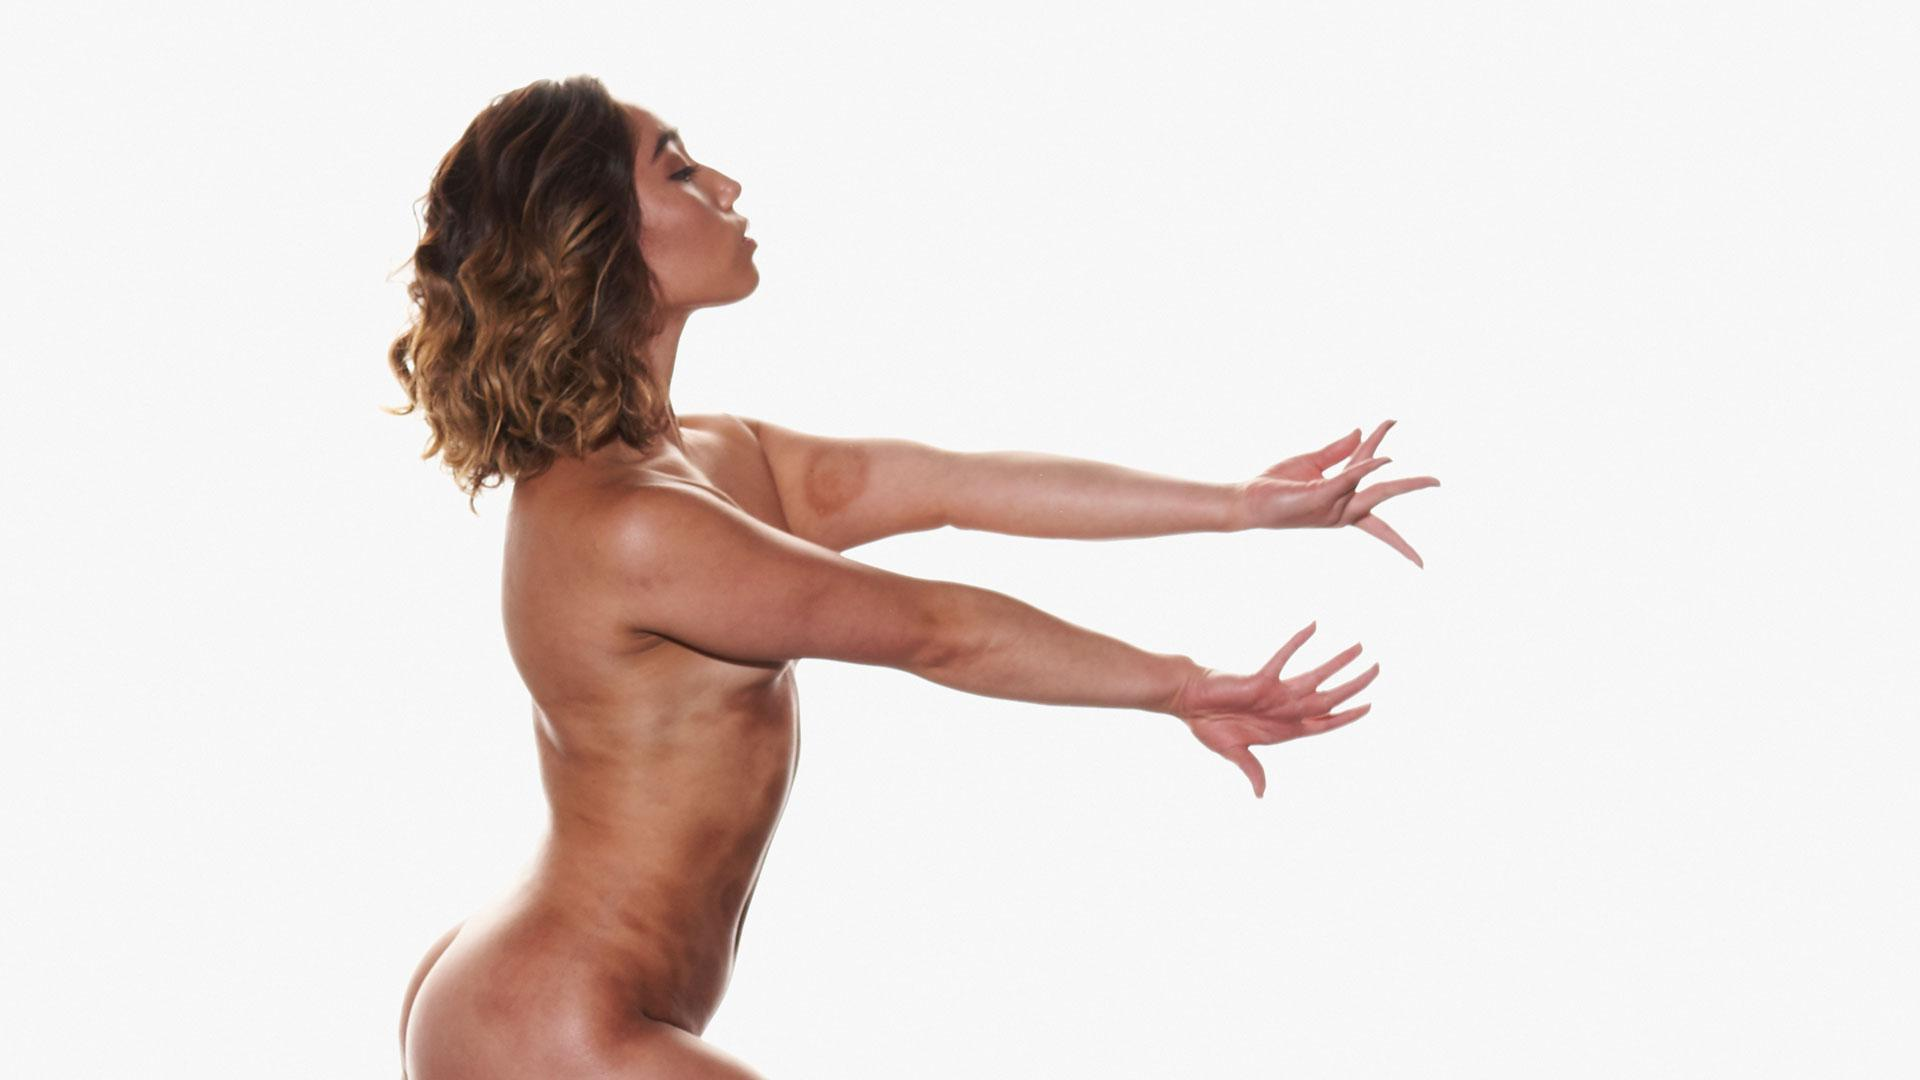 Behind the scenes of Katelyn Ohashi's Body Issue shoot